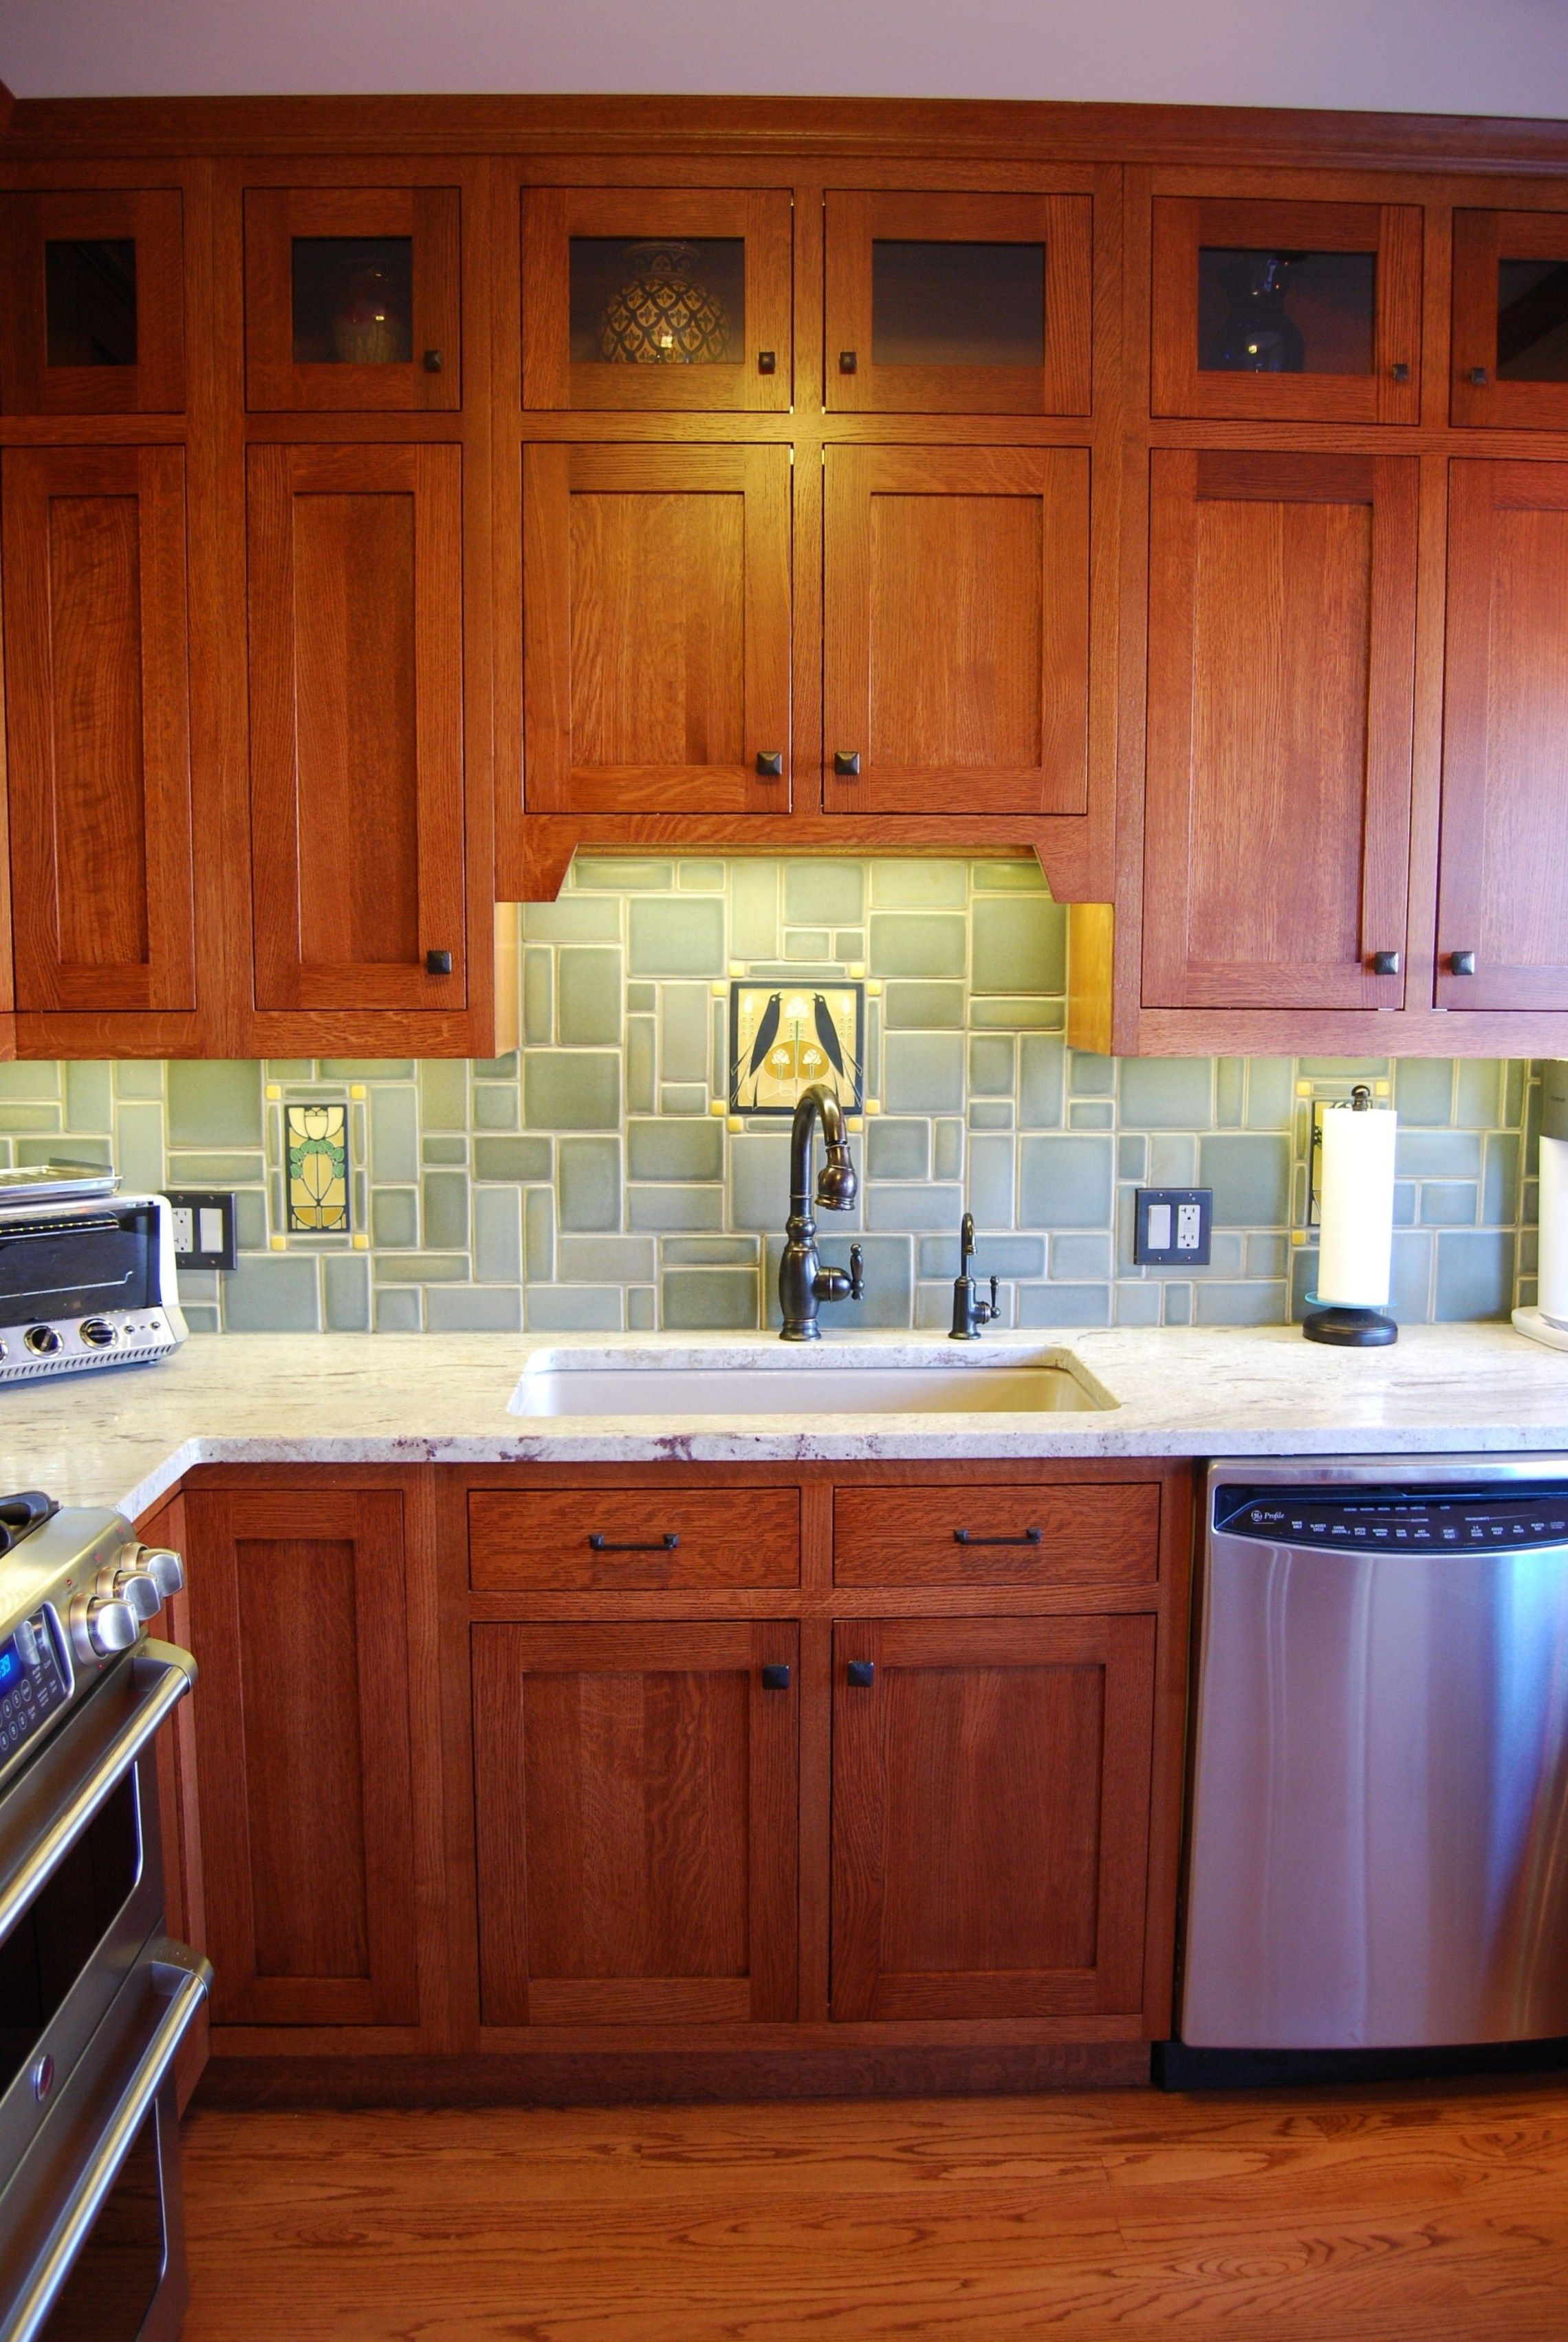 48 awesome modern farmhouse kitchen cabinets ideas on awesome modern kitchen design ideas id=79613